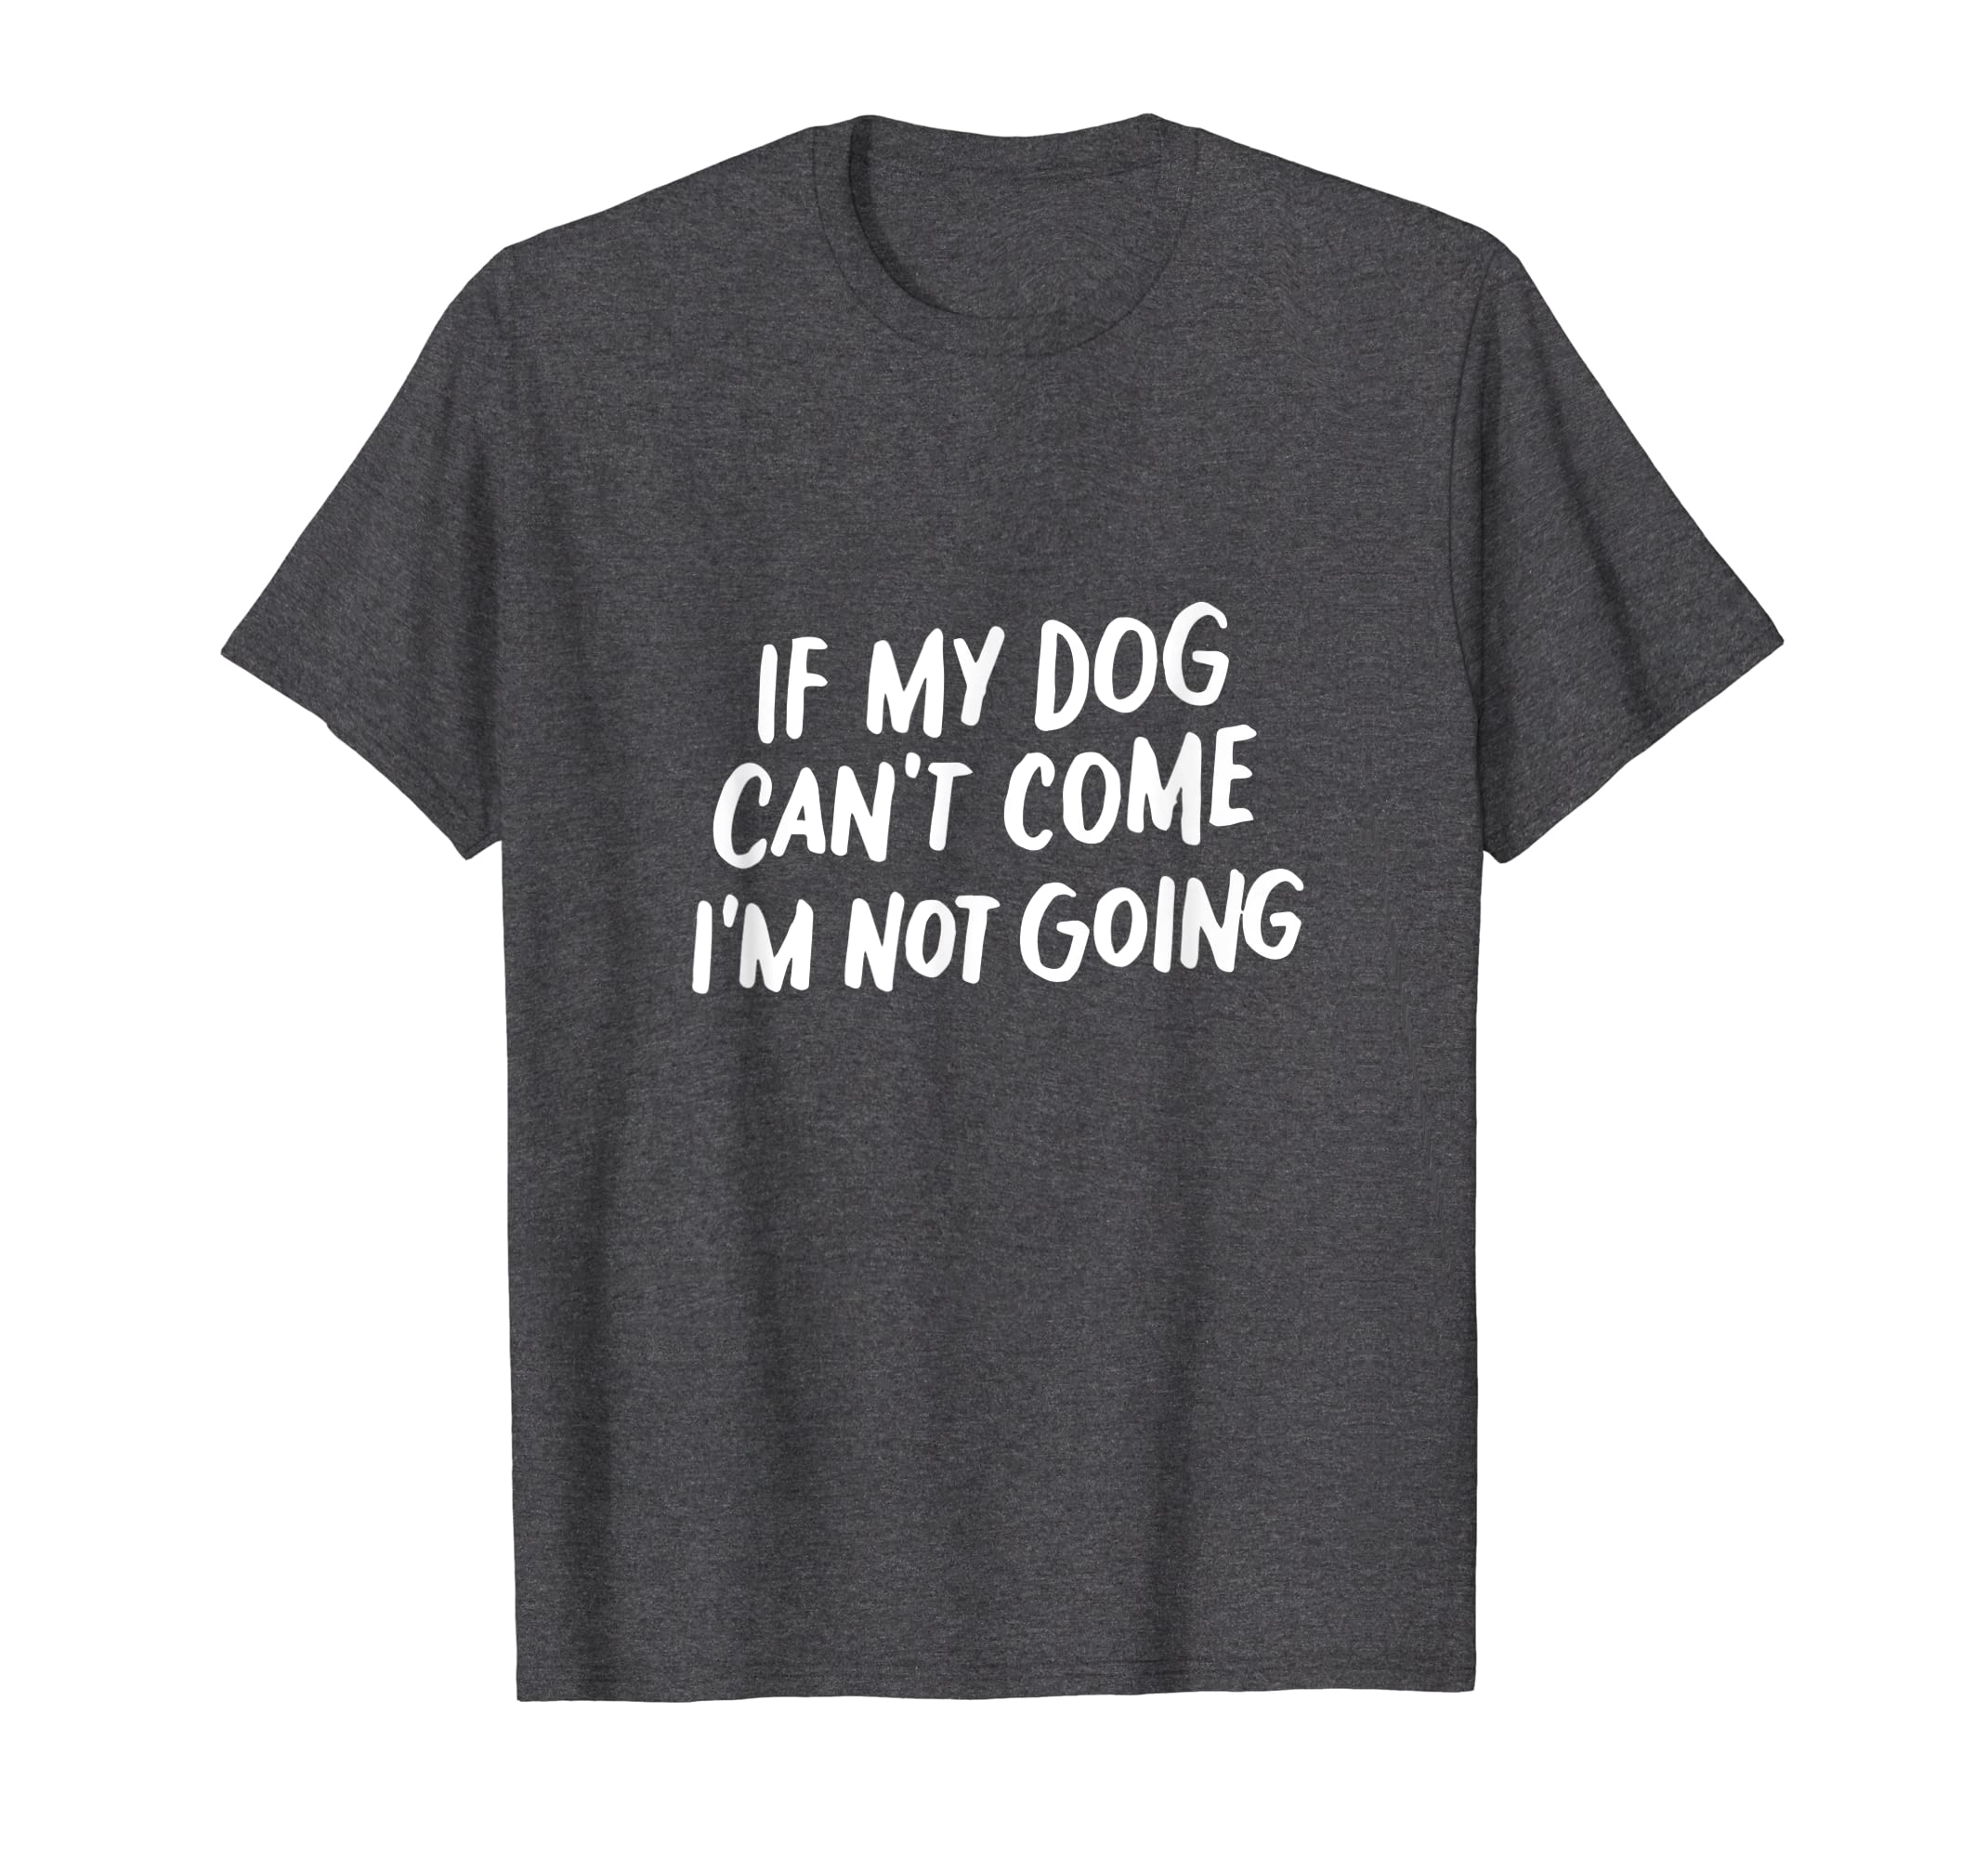 dbfbd62b711b Amazon.com: If My Dog Can't Come I'm Not Going Tee Shirt Men Women Gifts:  Clothing